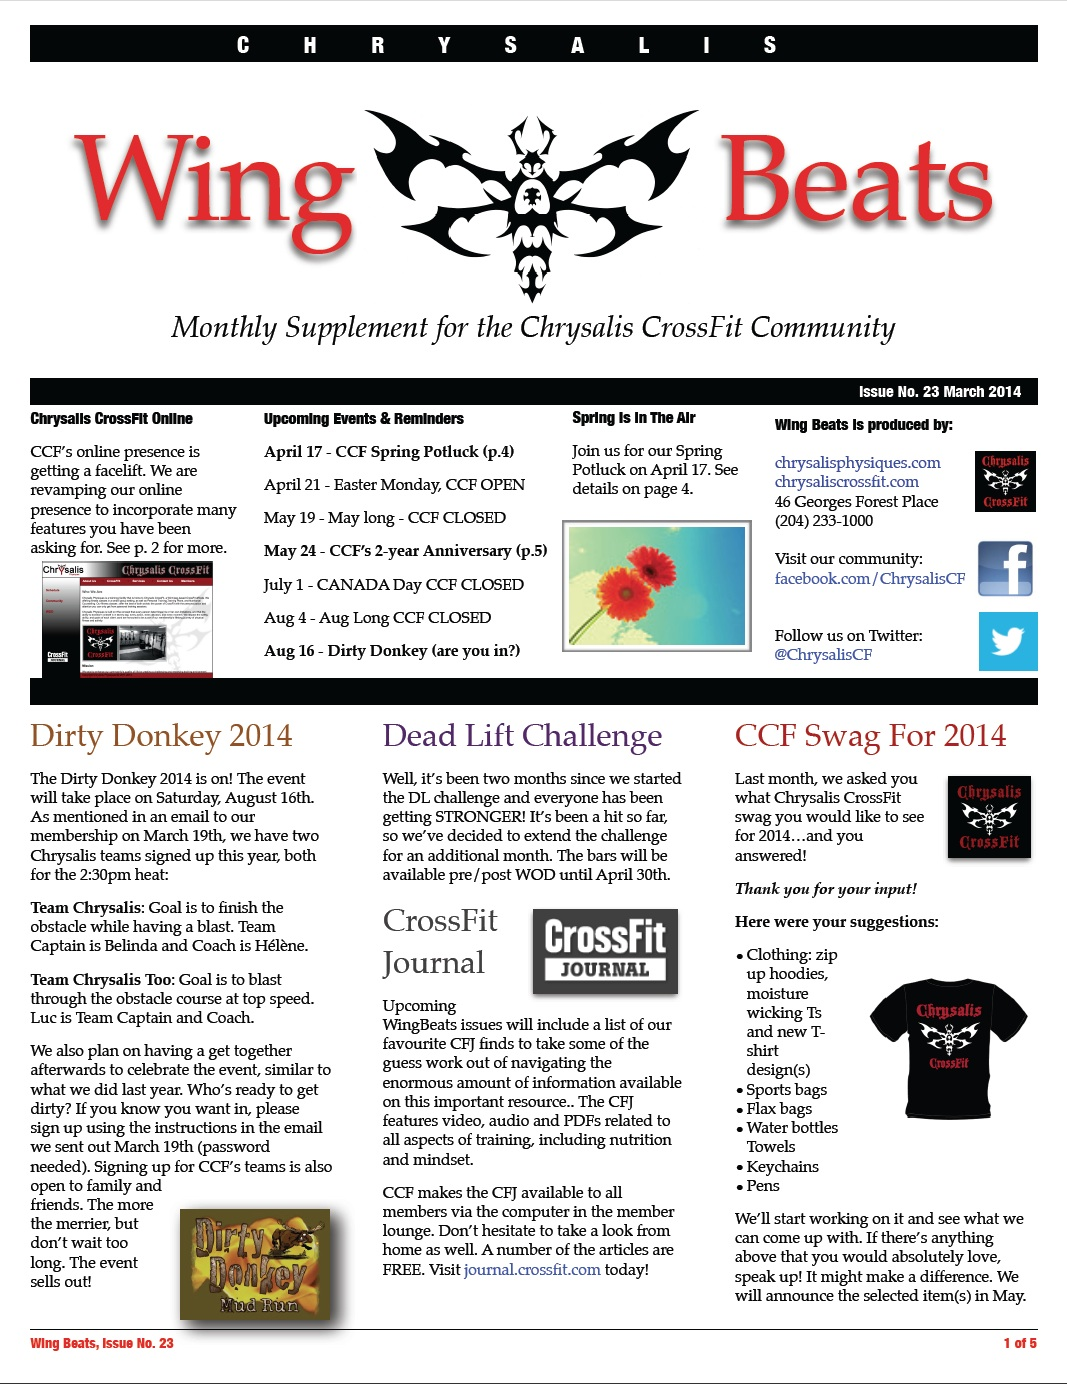 WingBeats Issue #23 - March 2014